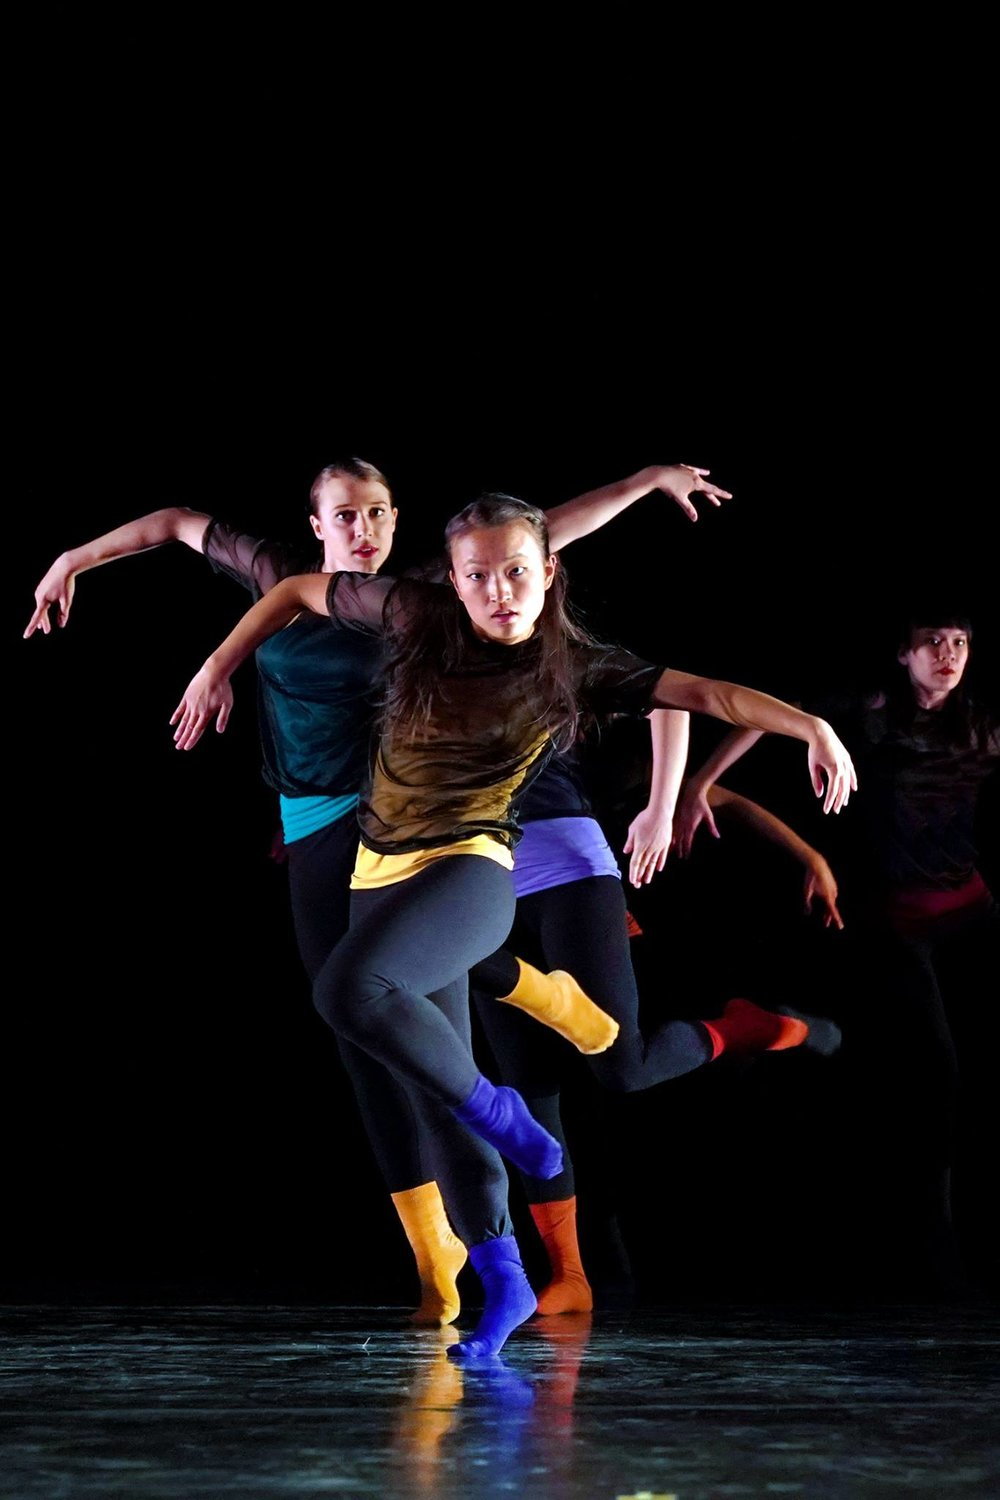 """And Counting"" choreographed by Allegra Herman"